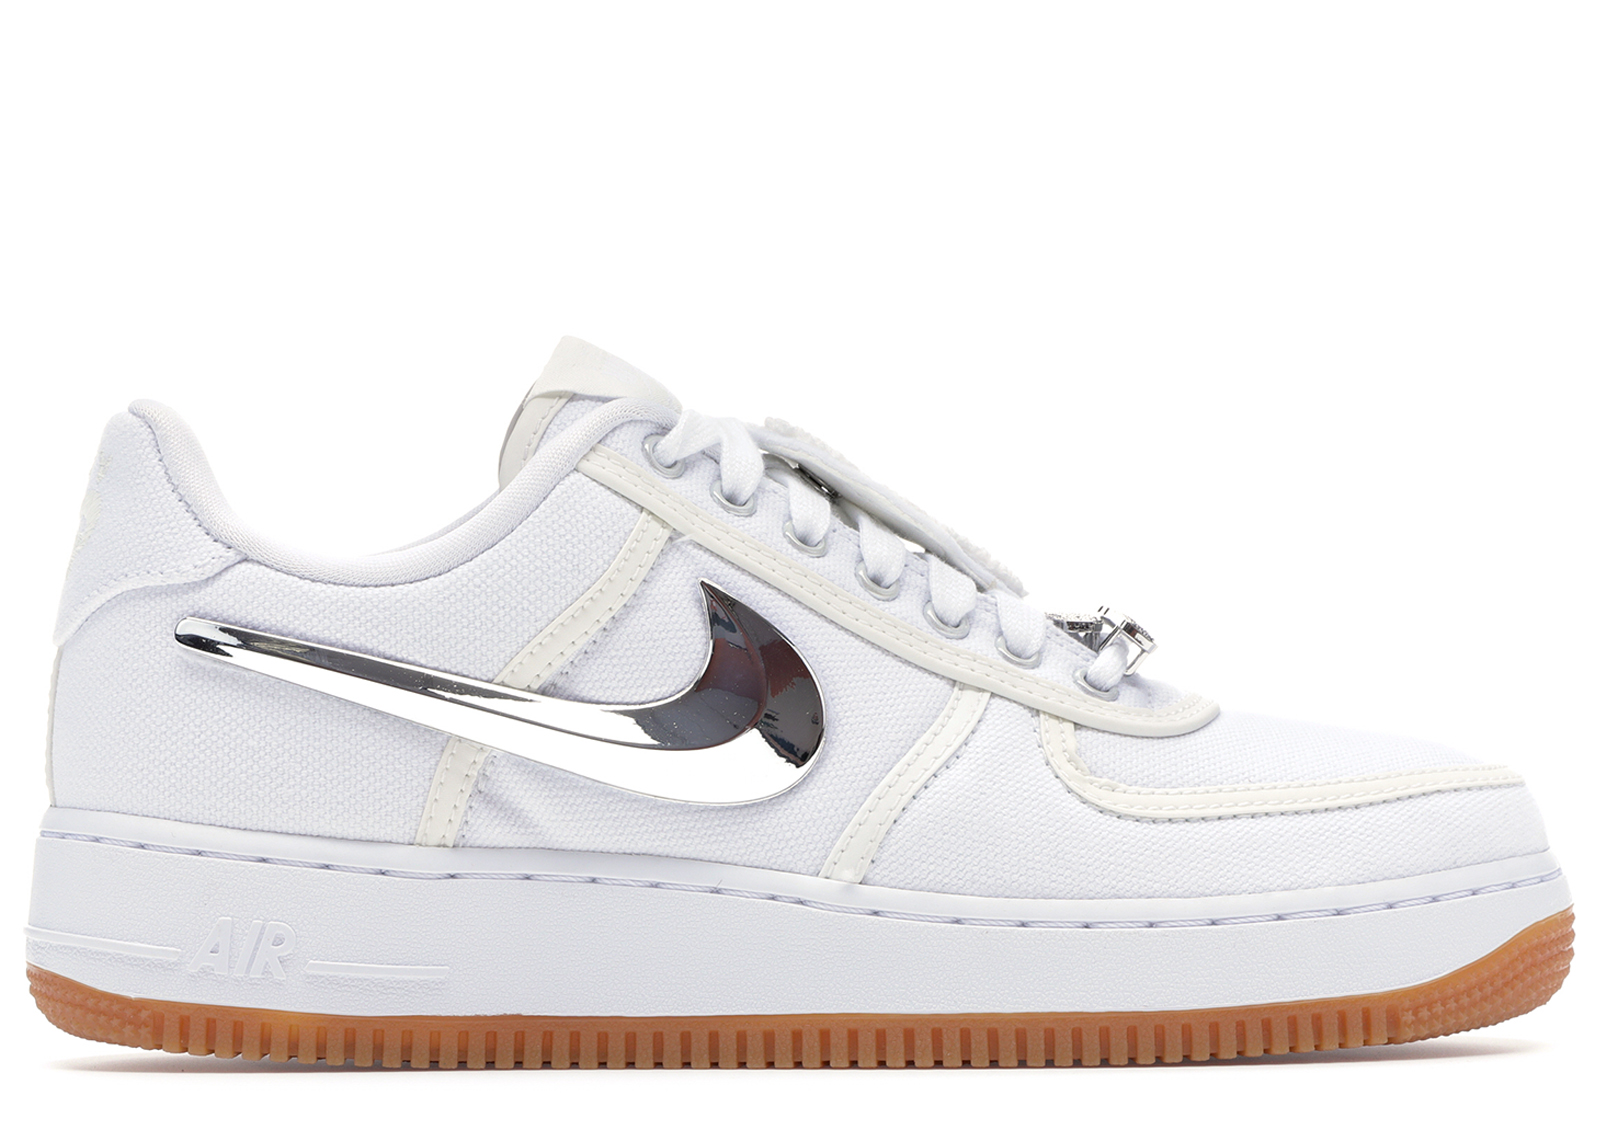 Travis Scott x Nike Air Force 1 Low Triple White For Sale